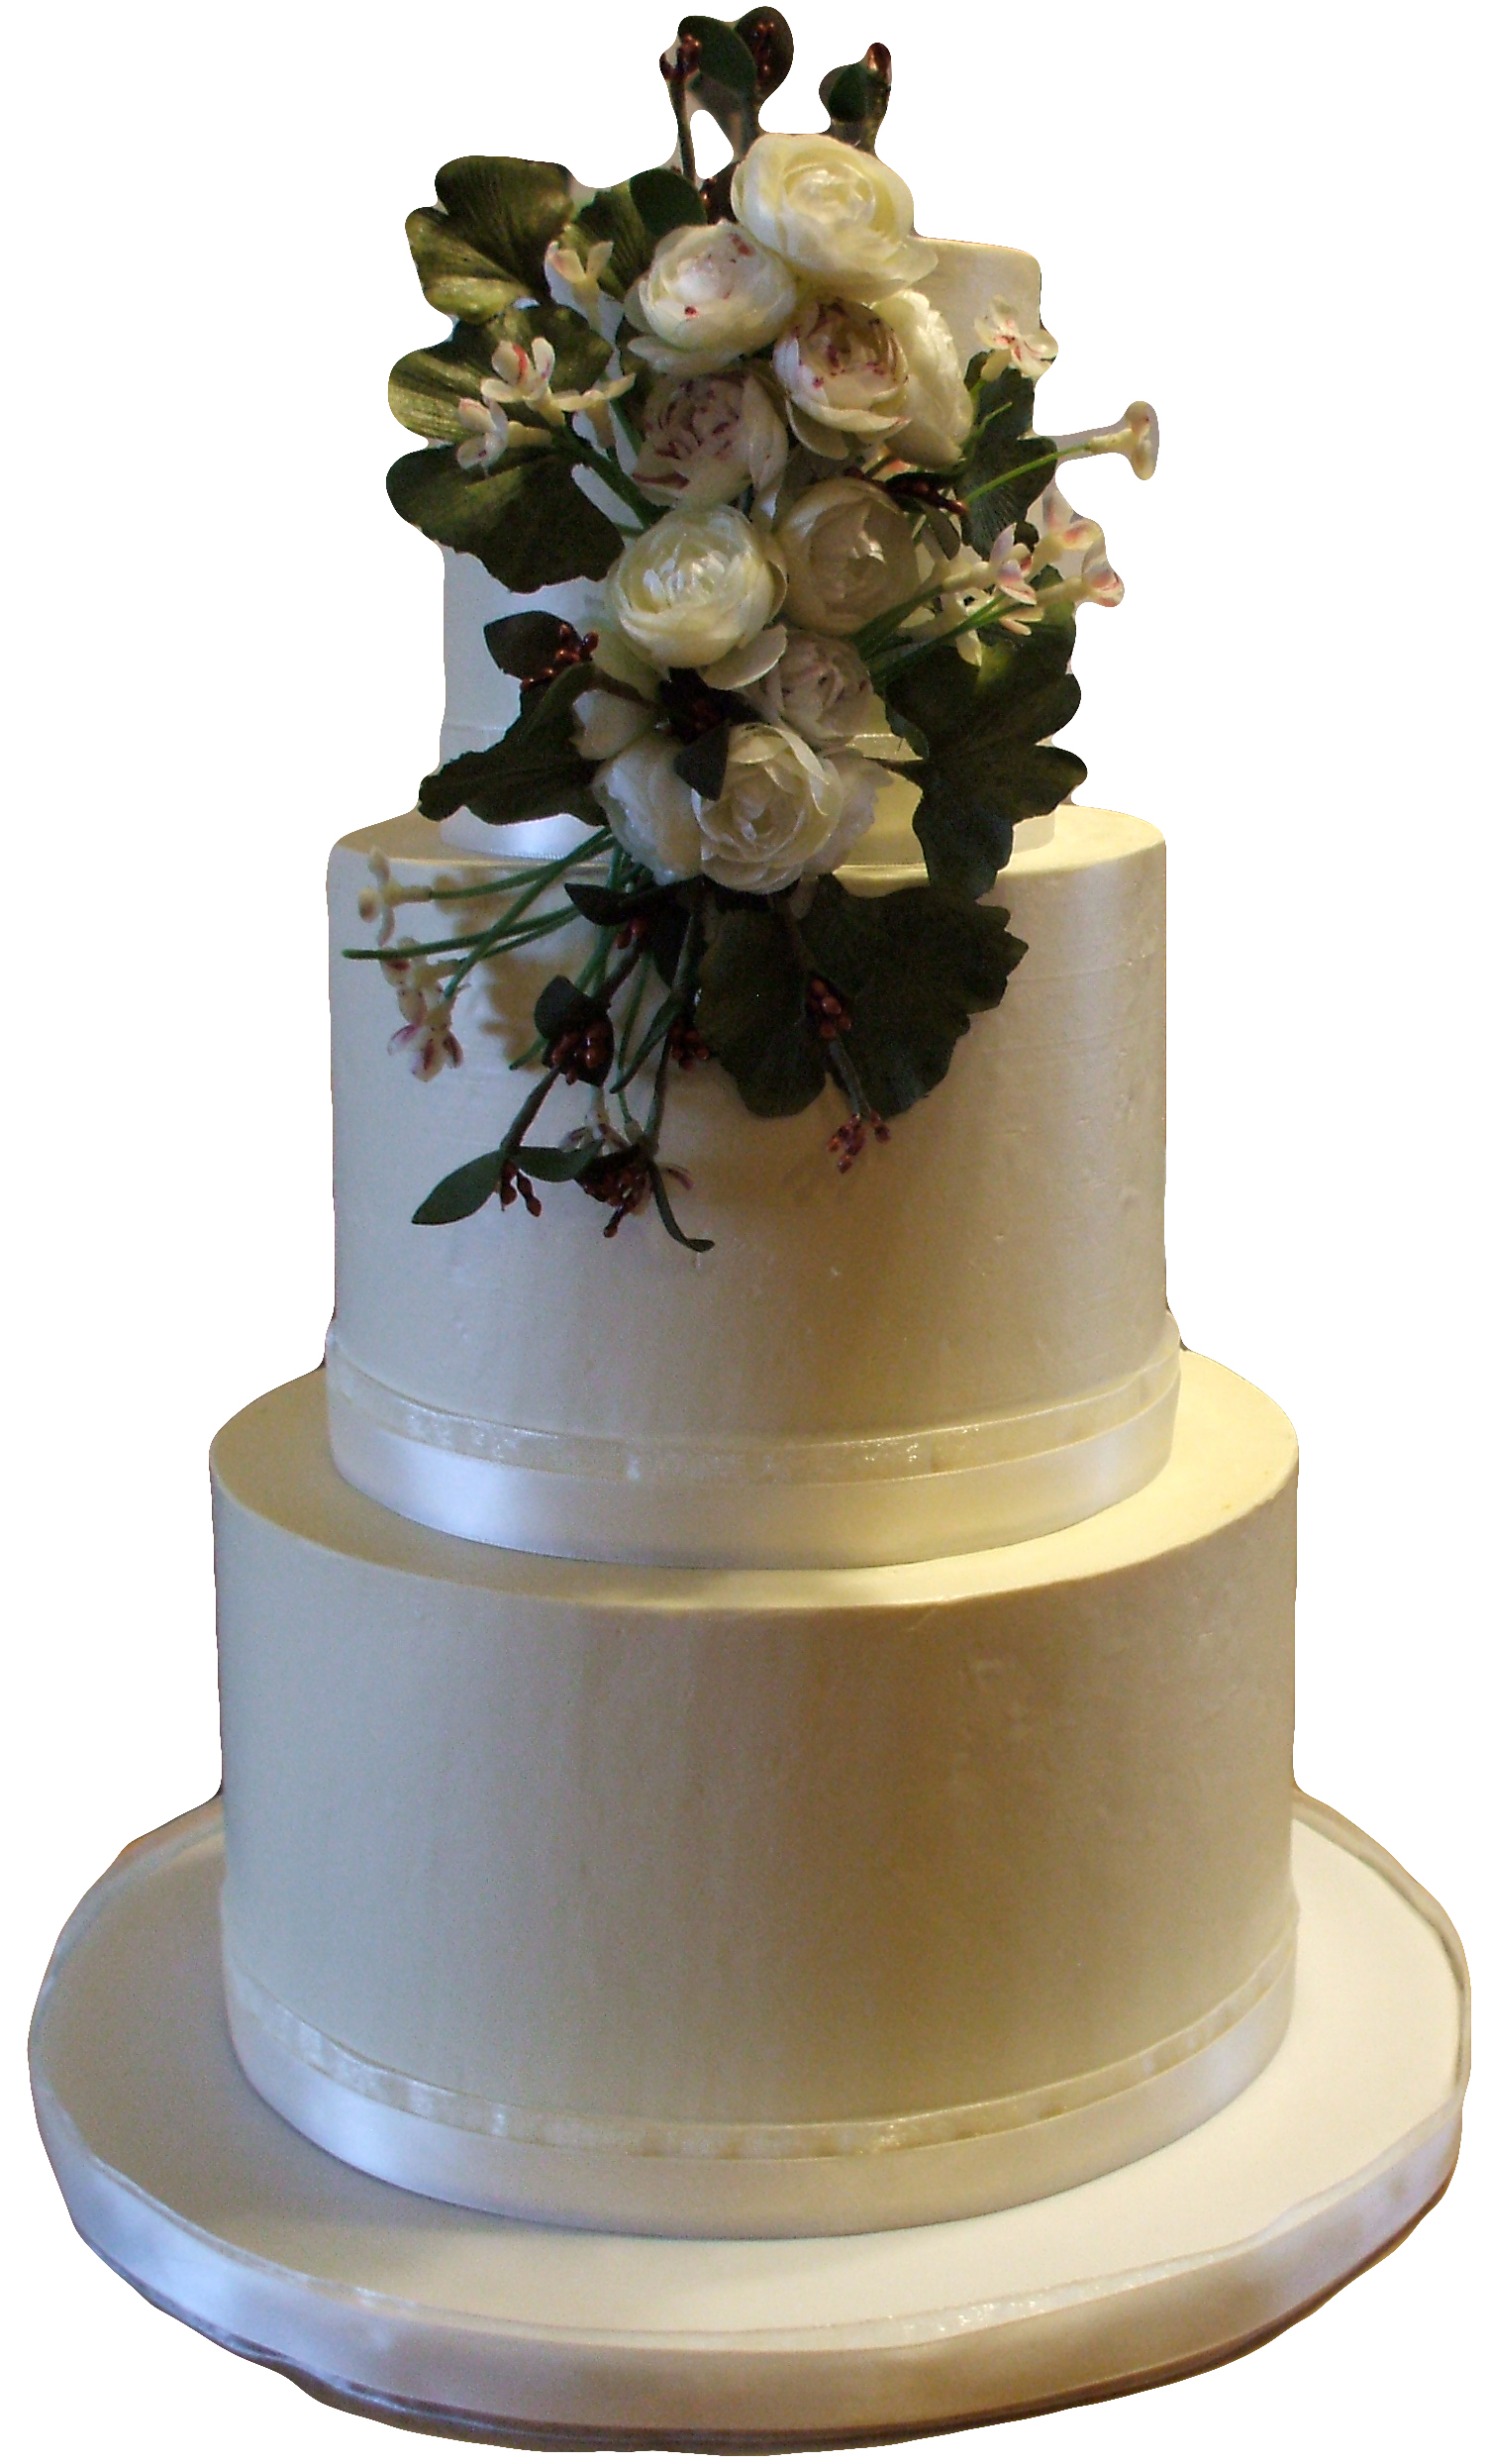 3 tier buttercream wedding cake  decorated with silk flowers